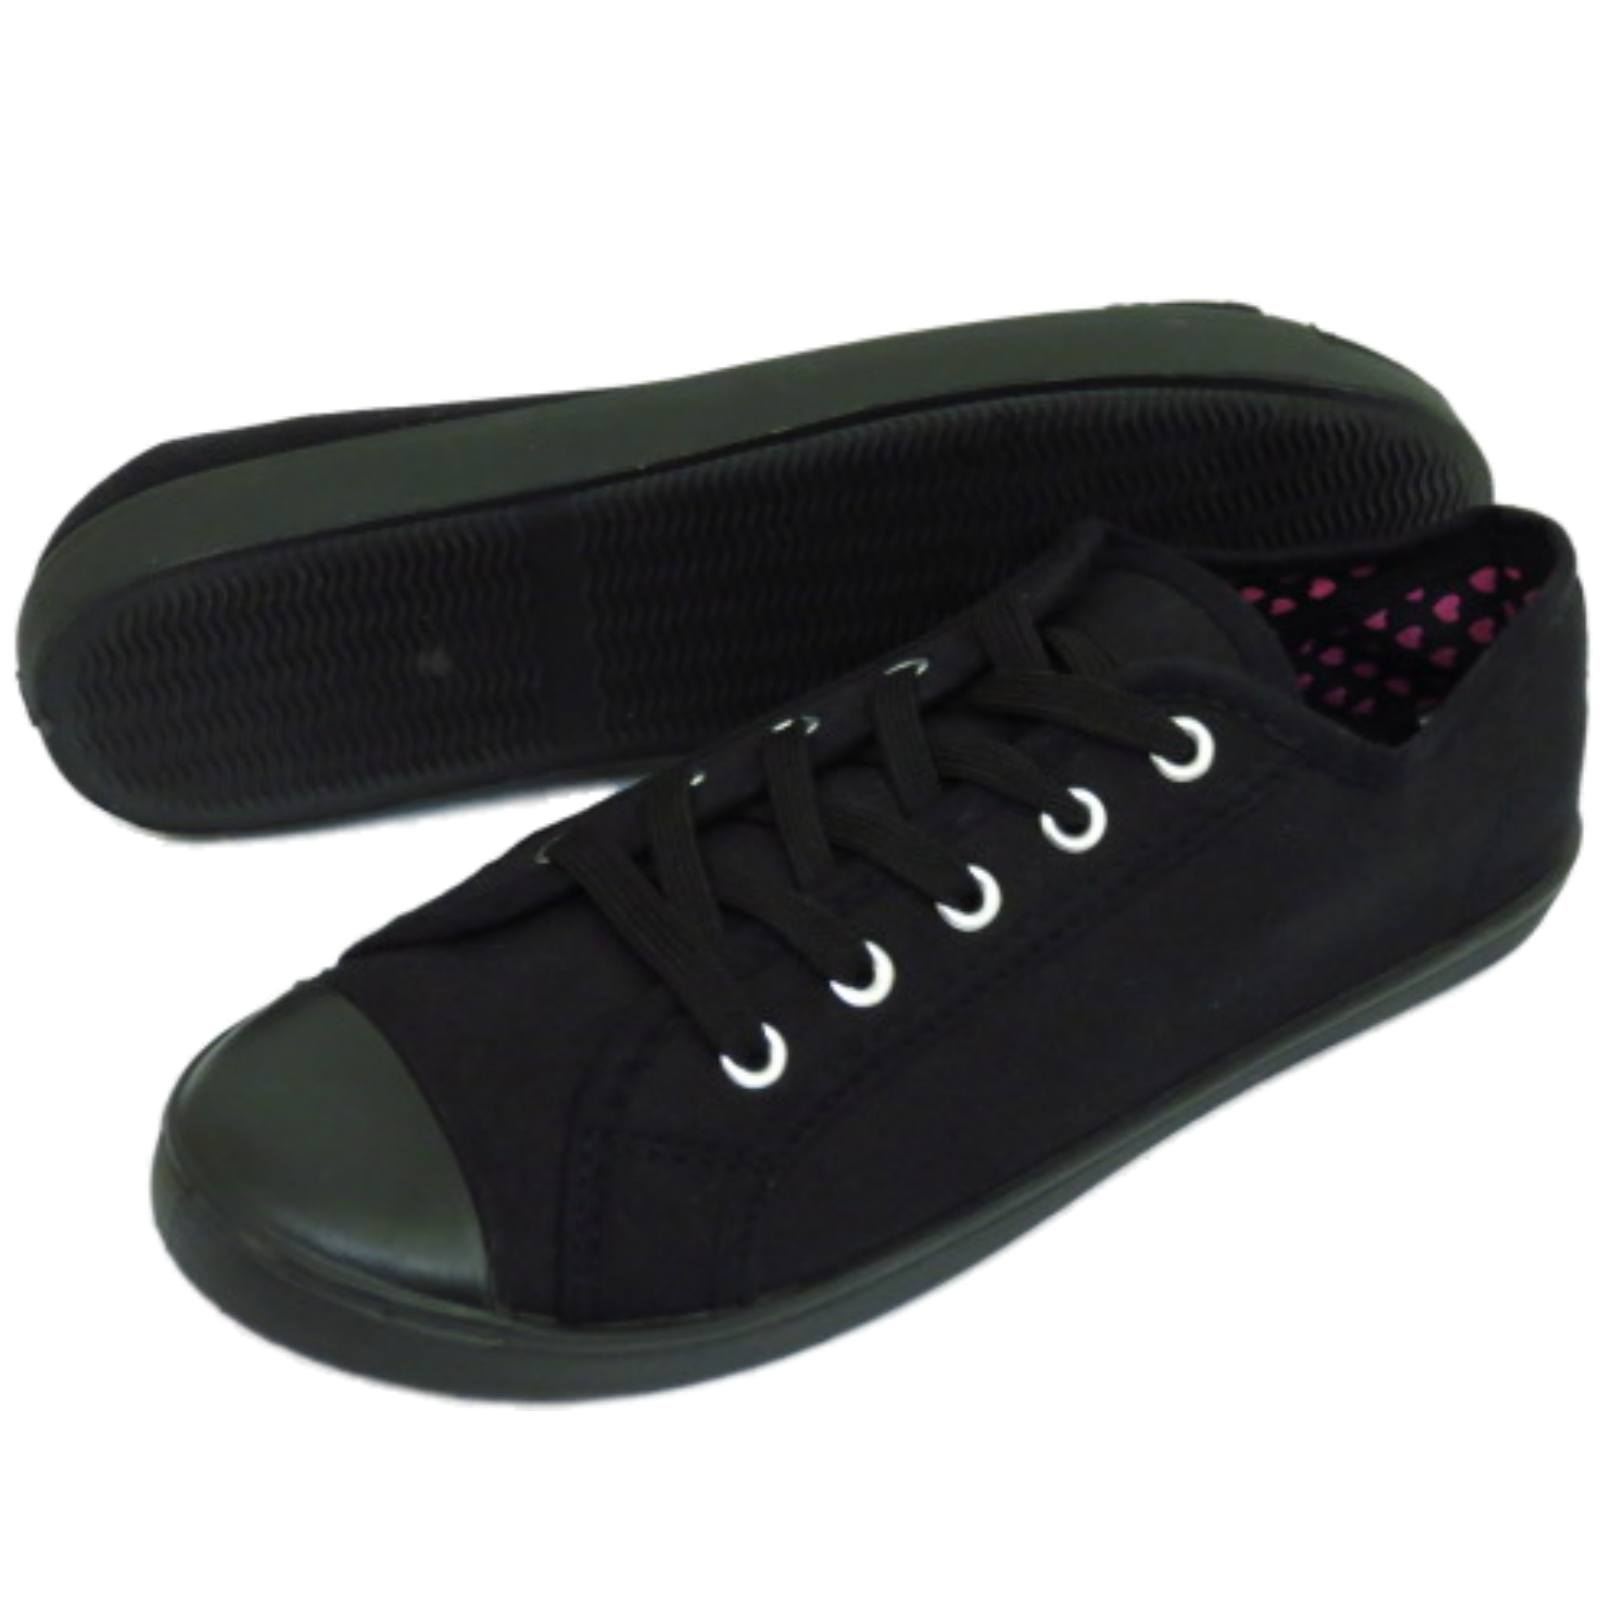 LADIES-BLACK-CANVAS-FLAT-LACE-UP-TRAINER-PLIMSOLL-PUMPS-CASUAL-SHOES-SIZES-3-9 thumbnail 6